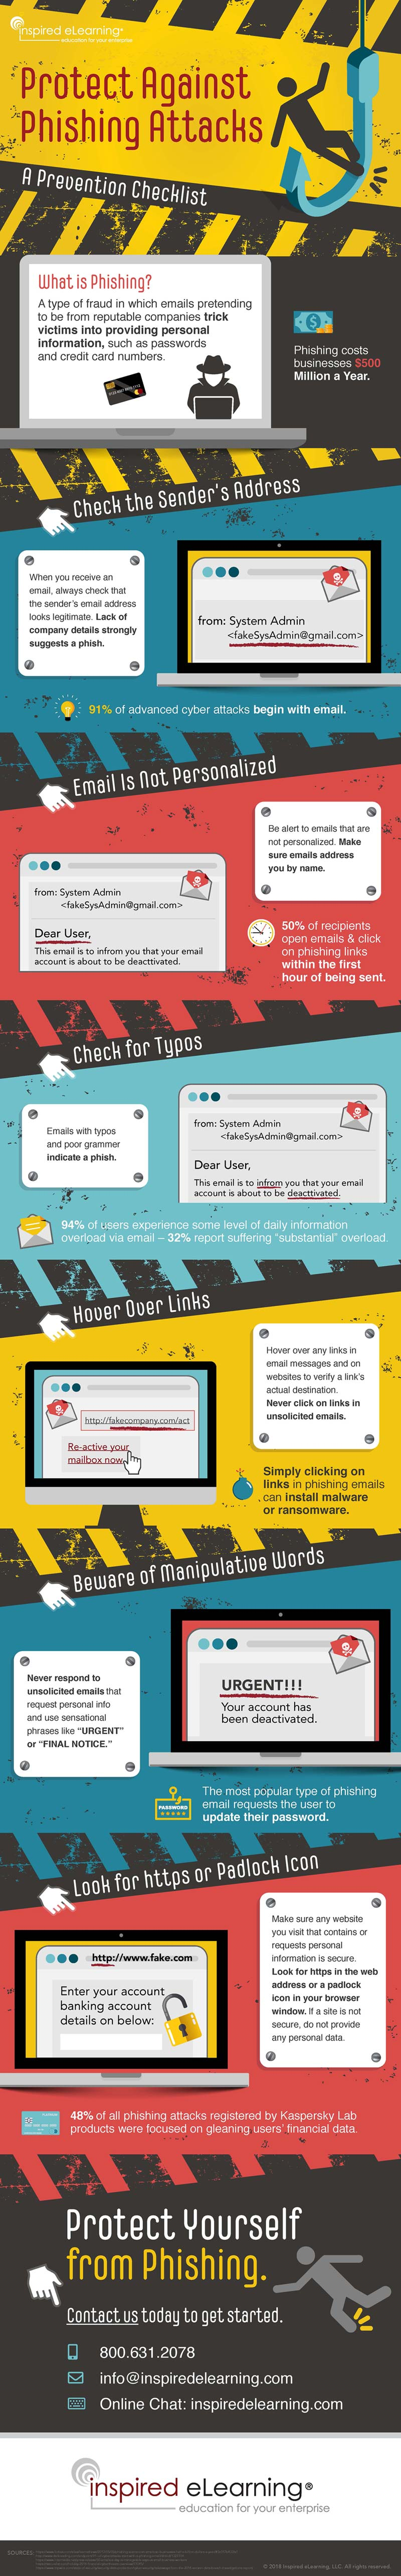 Phishing Prevention Infographic - Protect Against Phishing Attacks Infographic